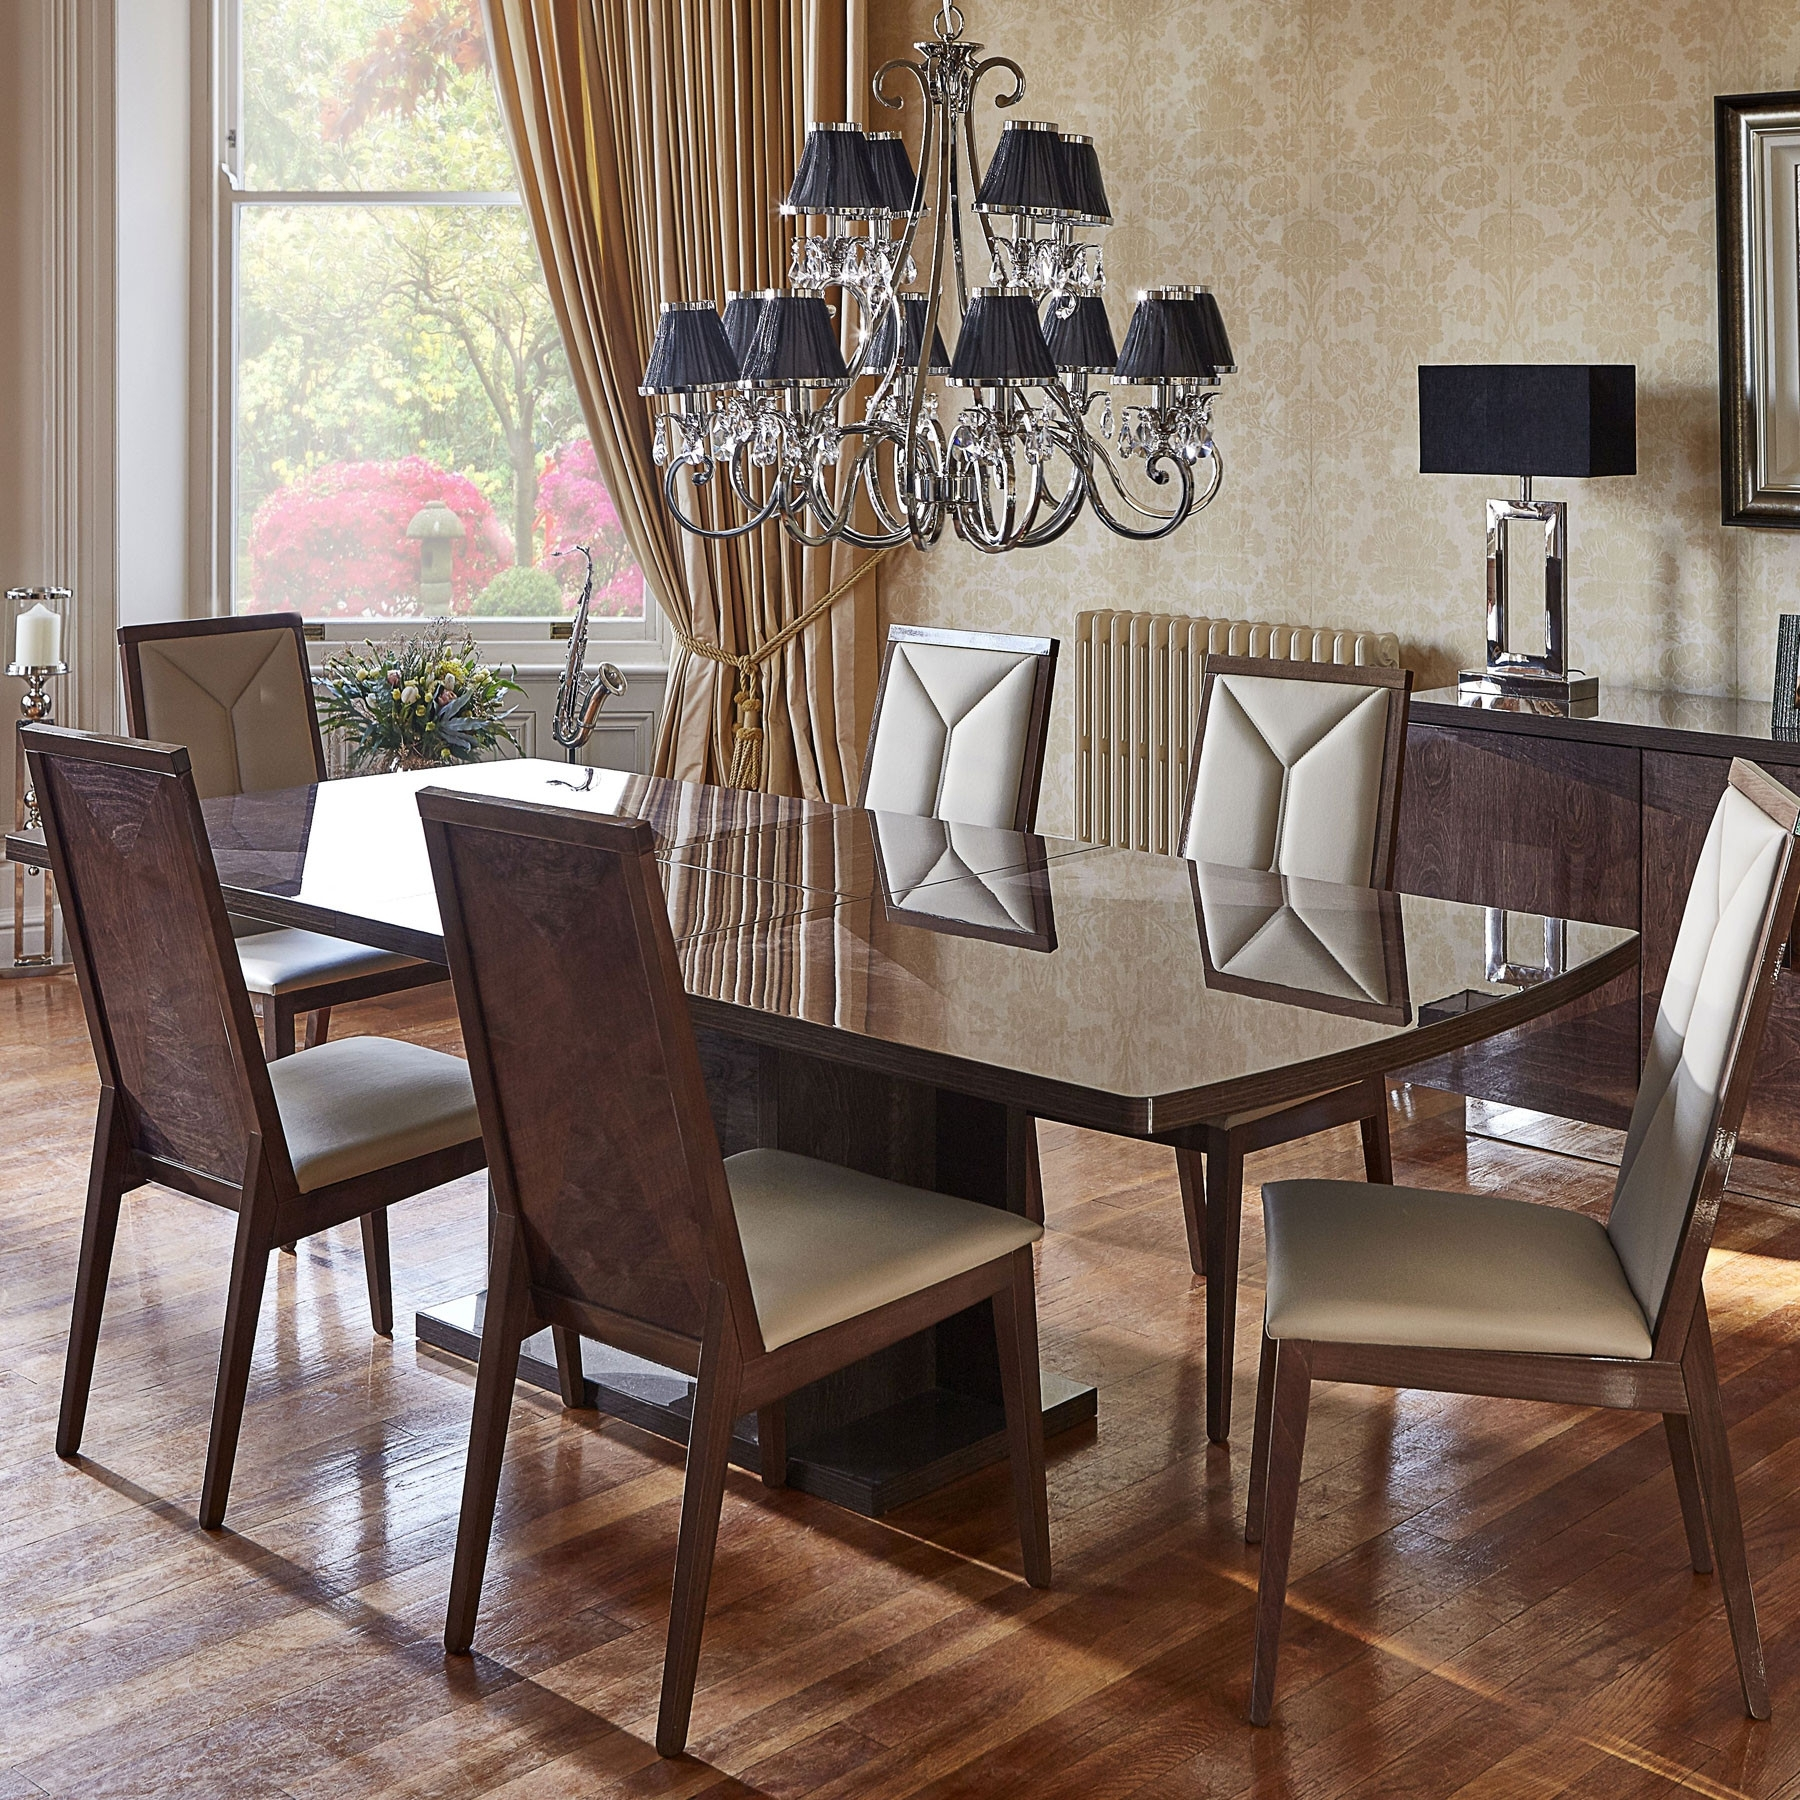 Gloss Dining Tables Throughout Most Recent Vogue High Gloss Extending Dining Table & 6 Chairs (View 4 of 25)